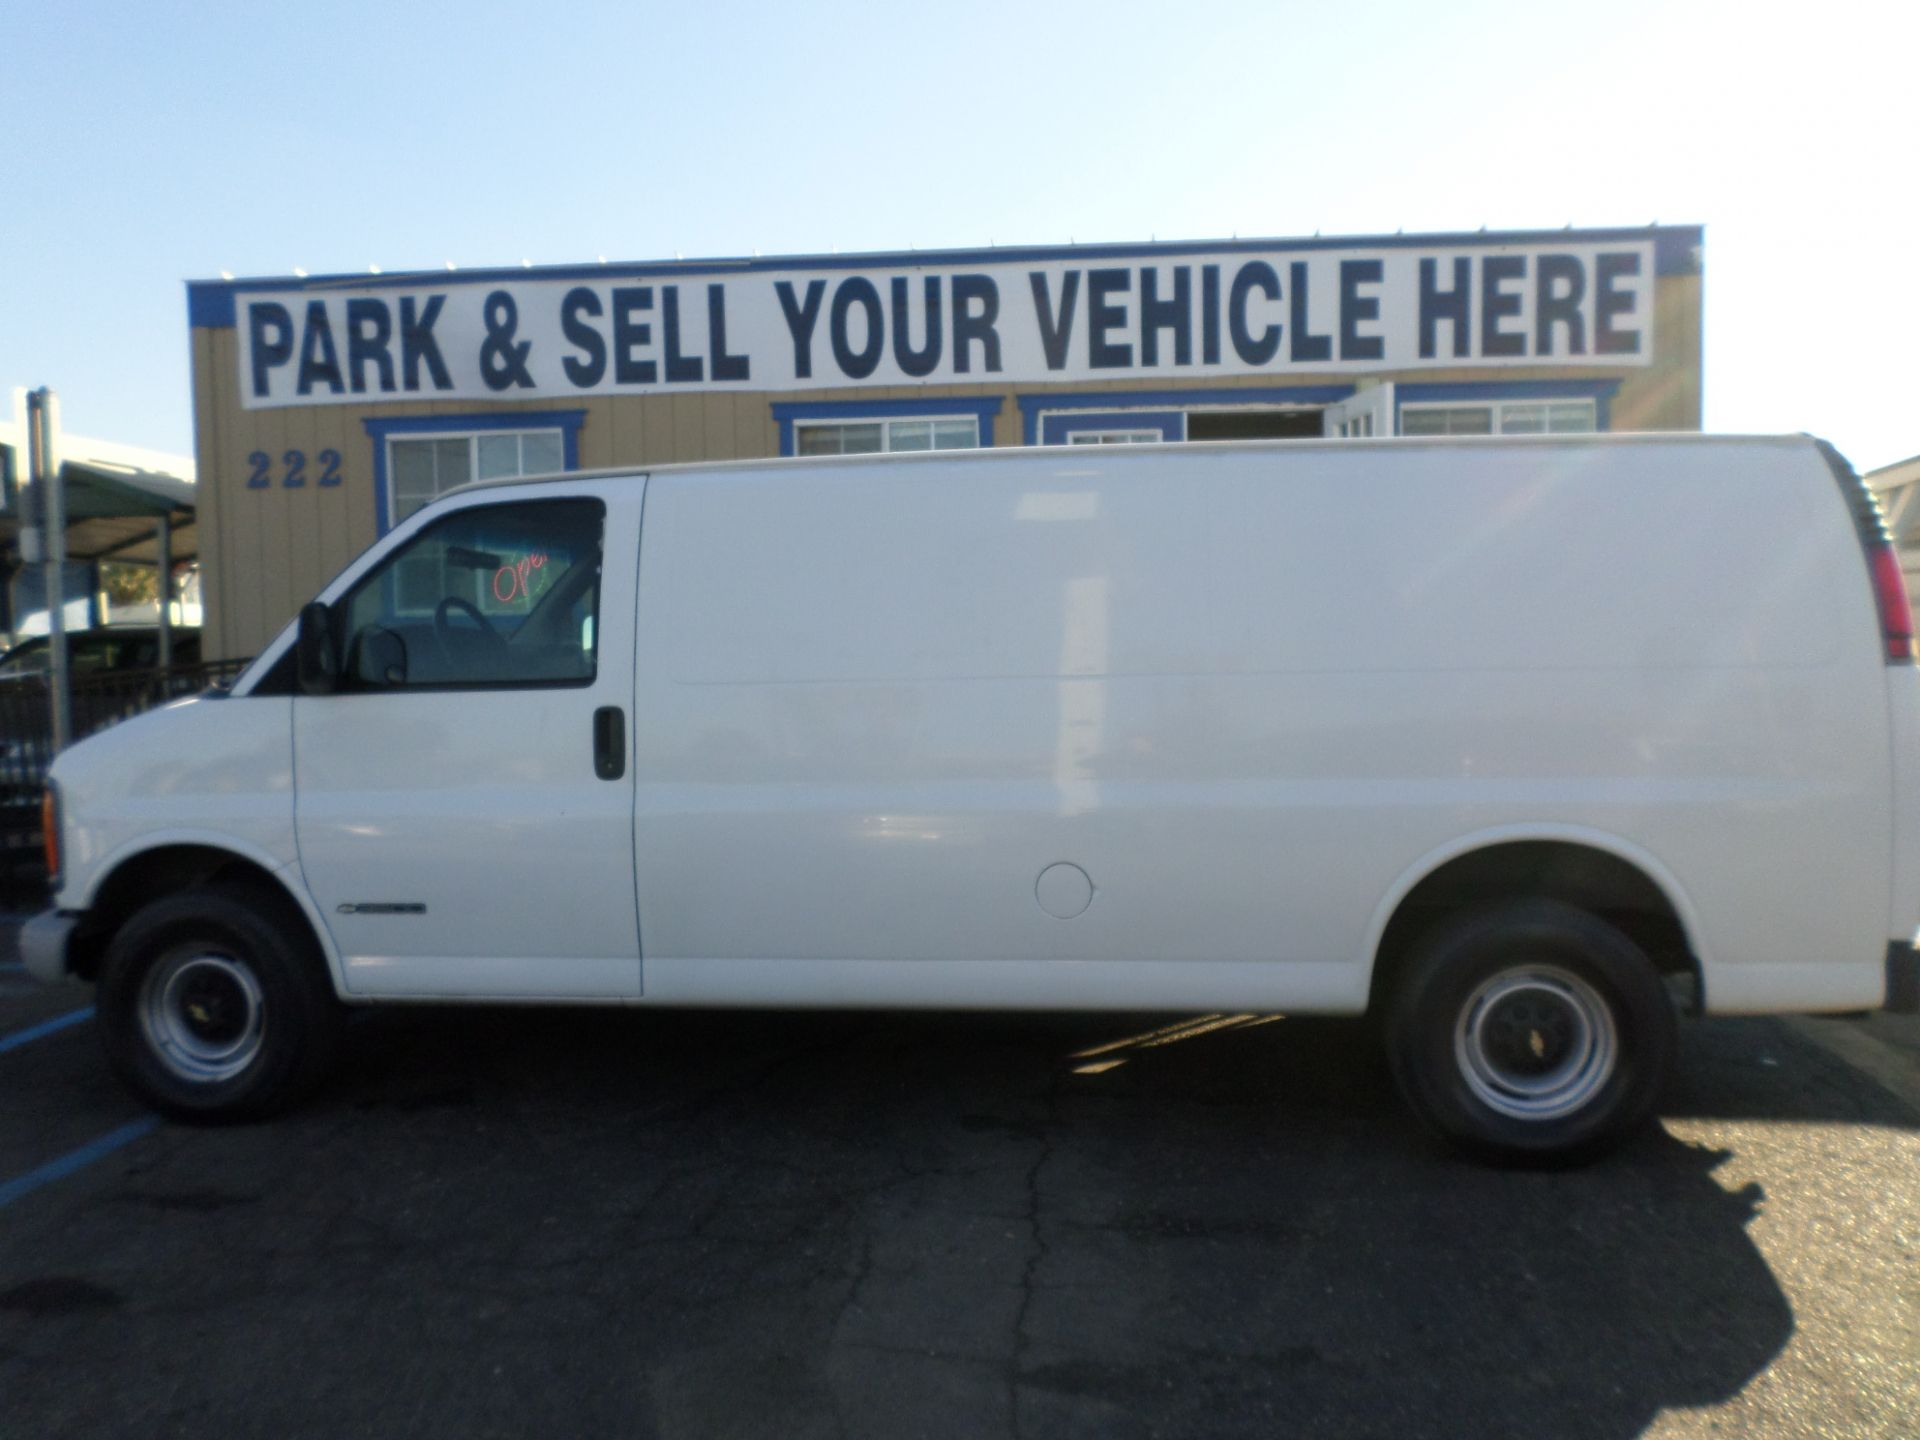 2002 Chevrolet Express 3500 Cargo Van Cargo Vans For Sale Cargo